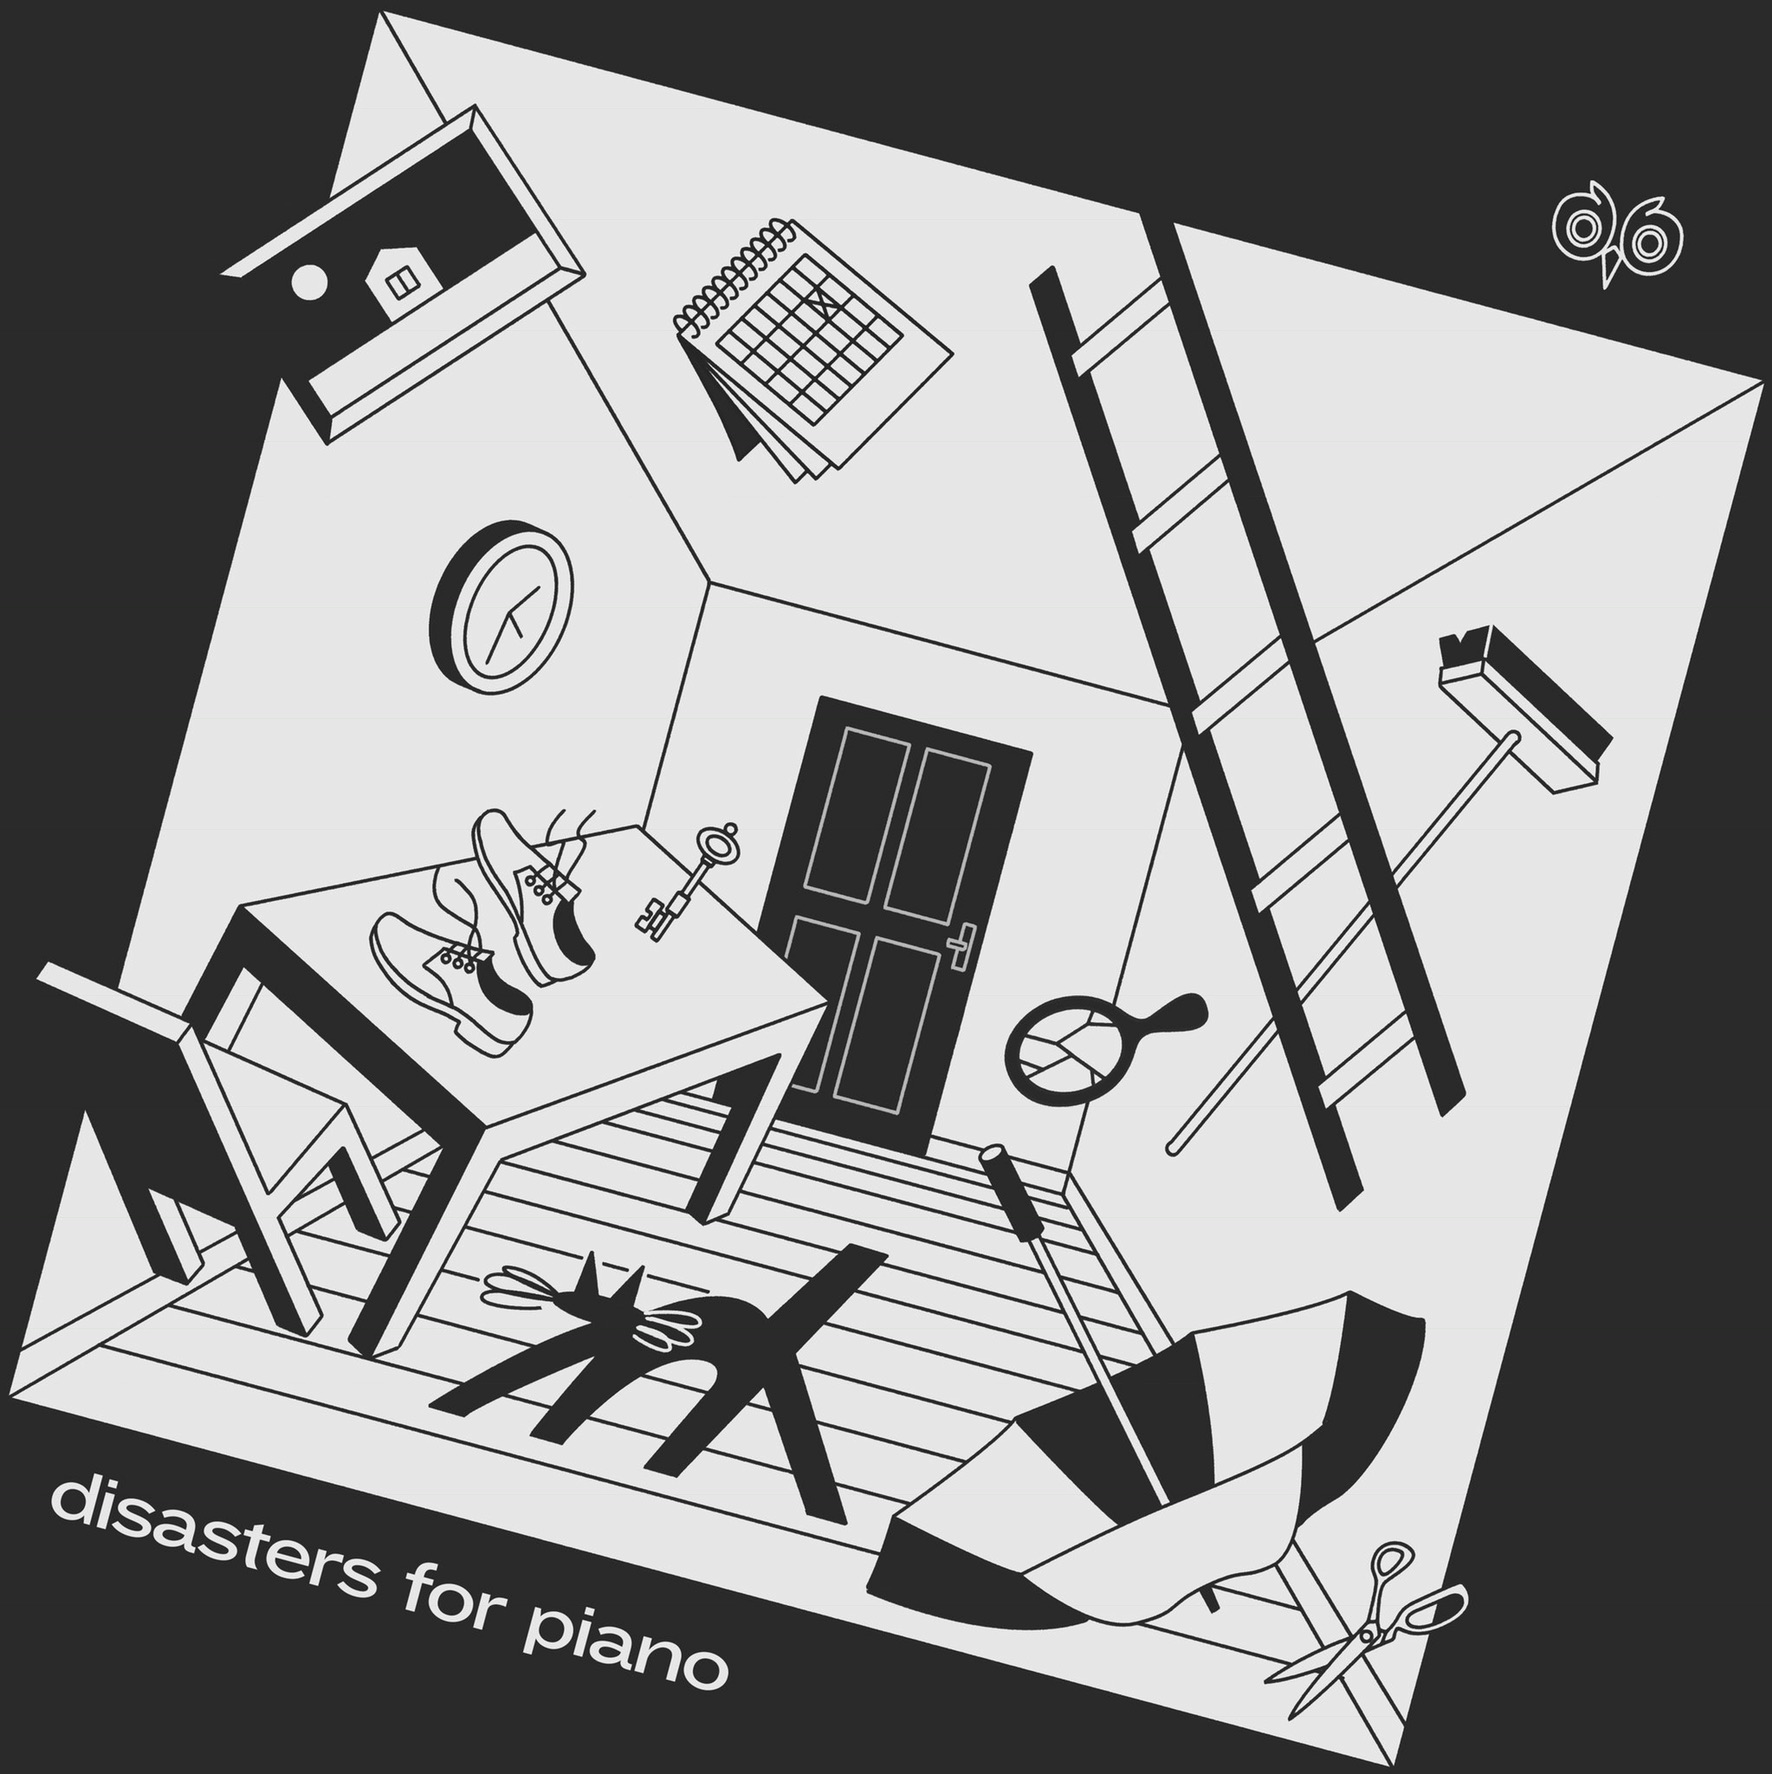 Disasters for Piano     (   Disasterpeace    - arr.    David Peacock   )